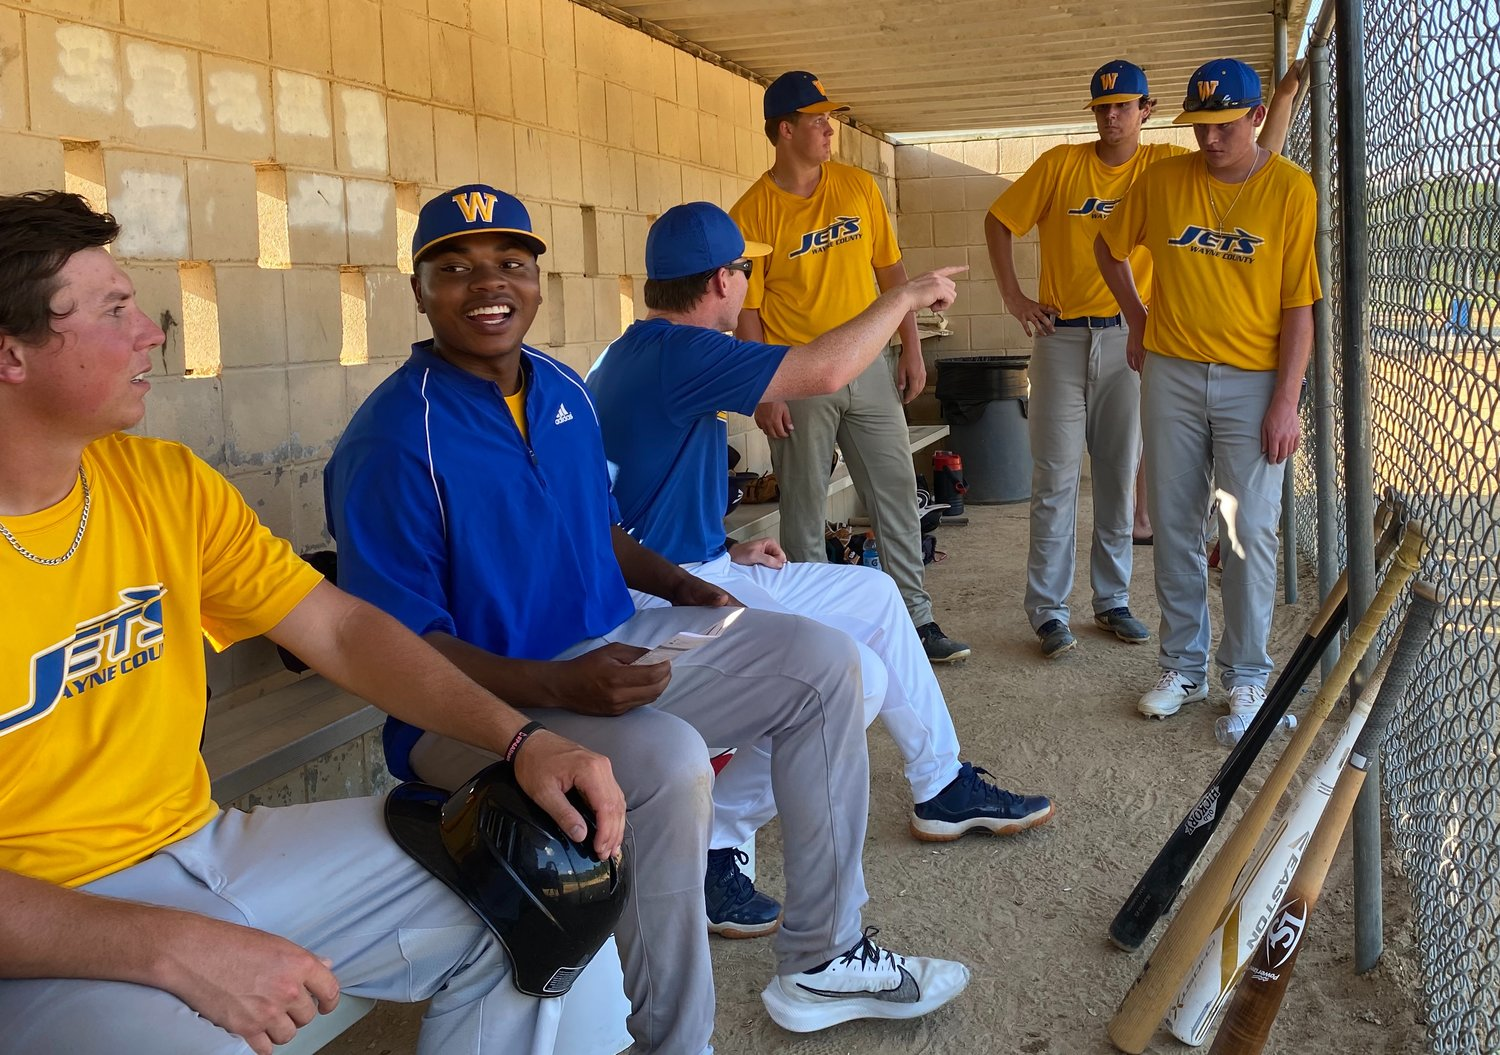 Wayne County Jets head coach Adam Pate (middle) has a teaching moment with some players in the dugout, while Tyler Daniels (second from left) and University of Mount Olive commit Blake Gipson (left) talk.